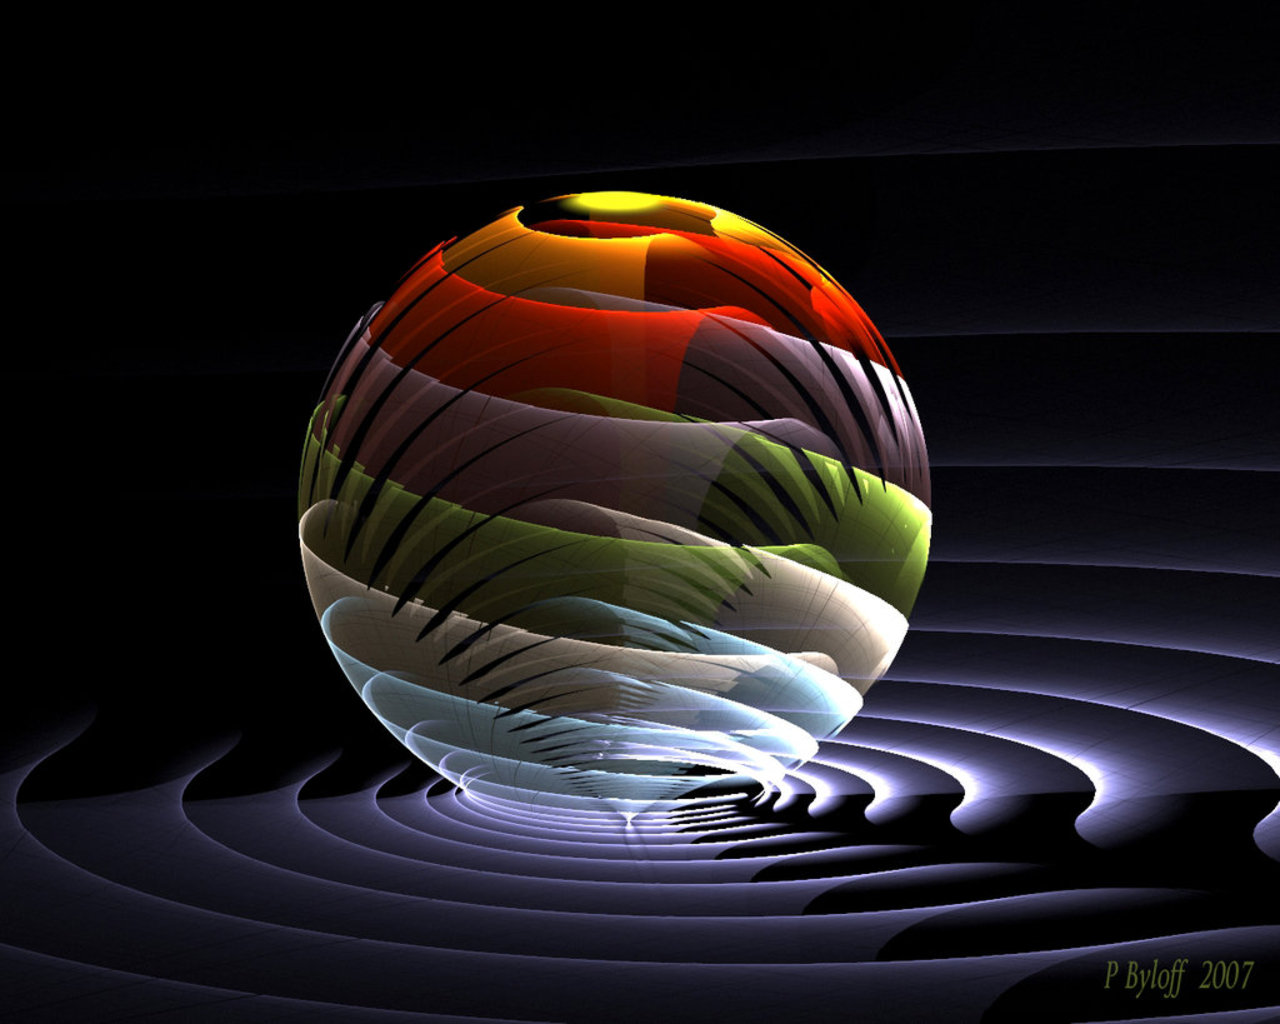 http://1.bp.blogspot.com/-vPsqSfk0aJc/T8C3eibimvI/AAAAAAAAEX8/Be3AfKNgG88/s1600/abstract-colorful-ball-wallpaper.jpg